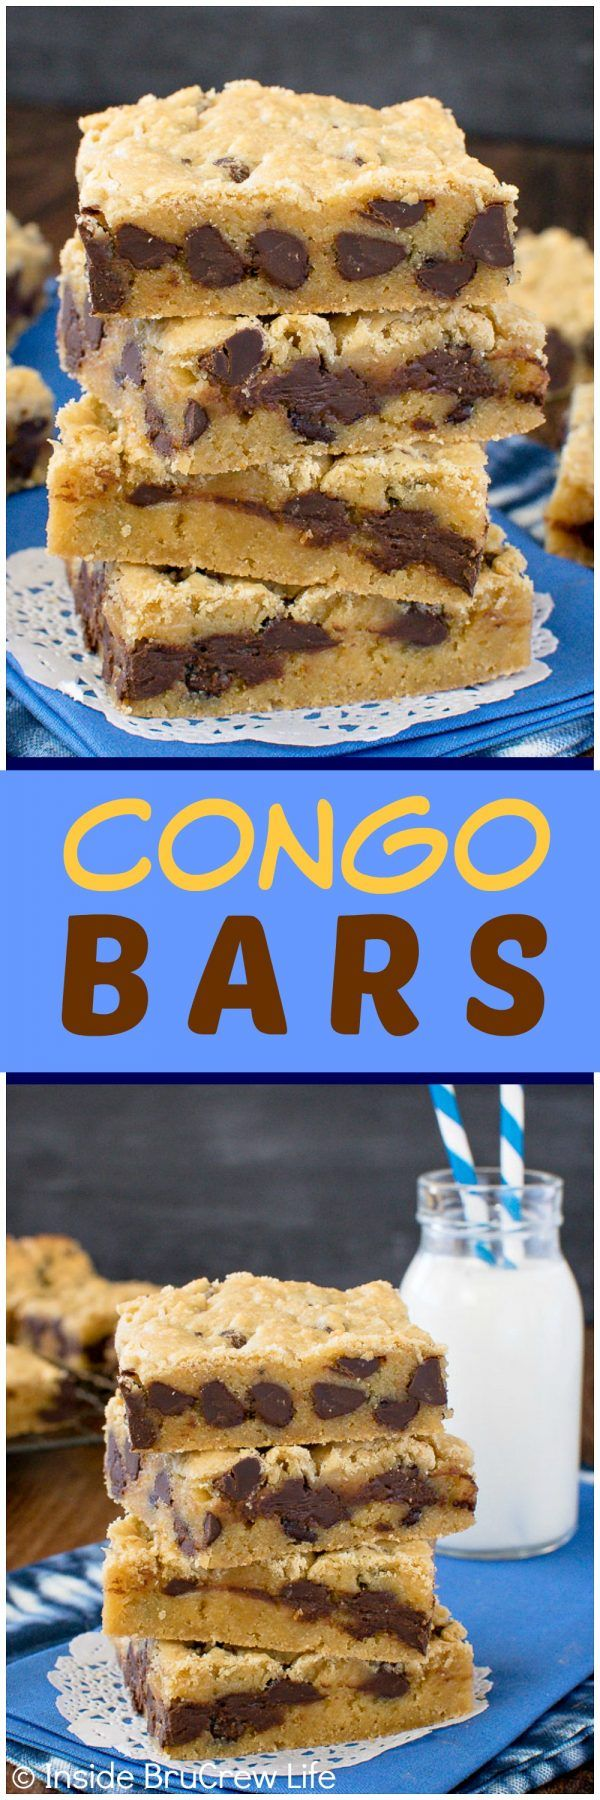 Congo Bars - soft and chewy blonde brownies loaded with chocolate chips makes these the best dessert recipe for any party!